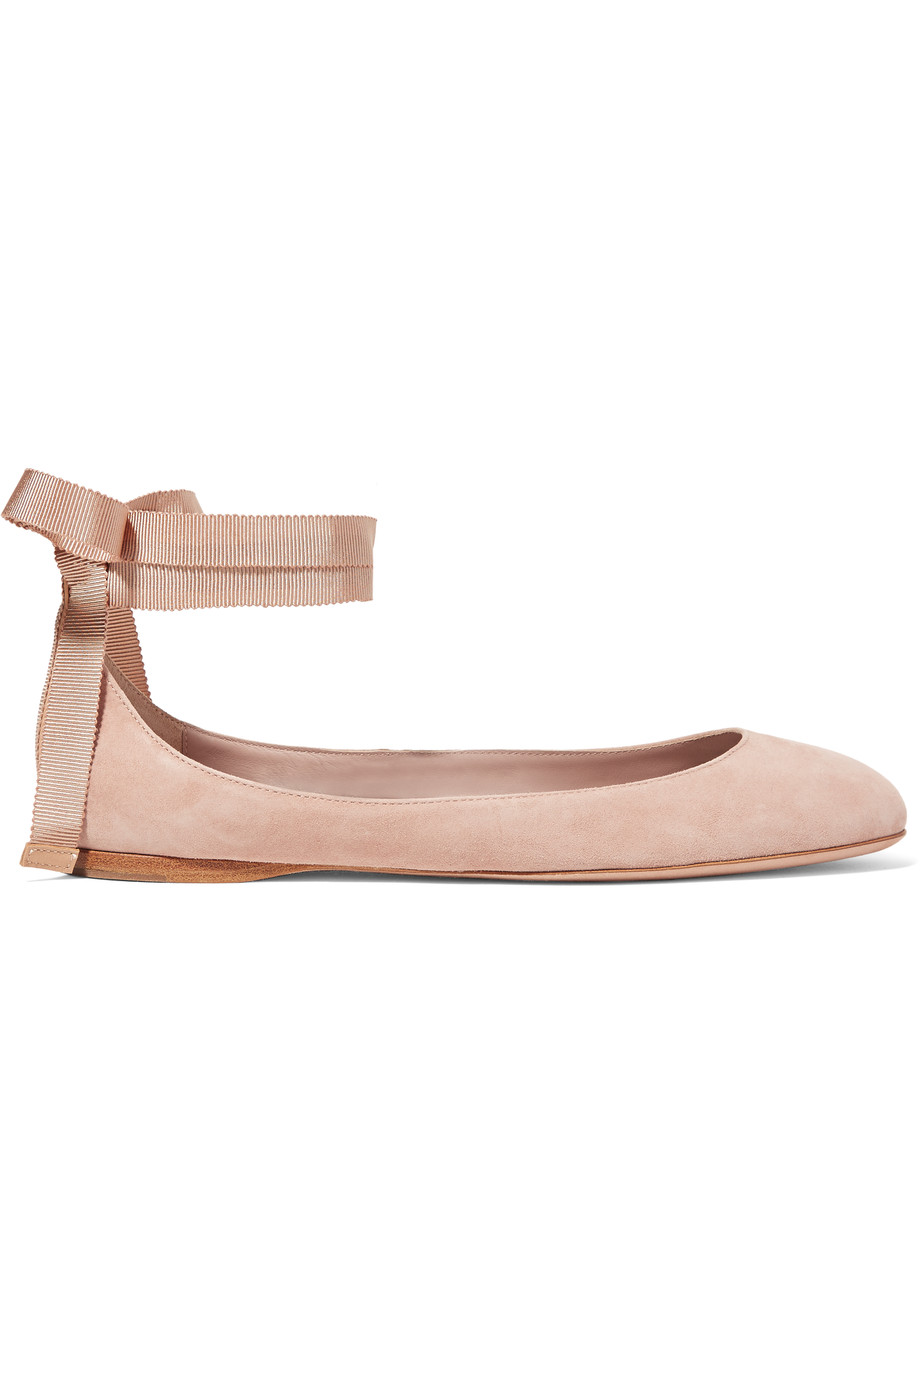 Pink Suede Ballet Flats | The Weekly Edit